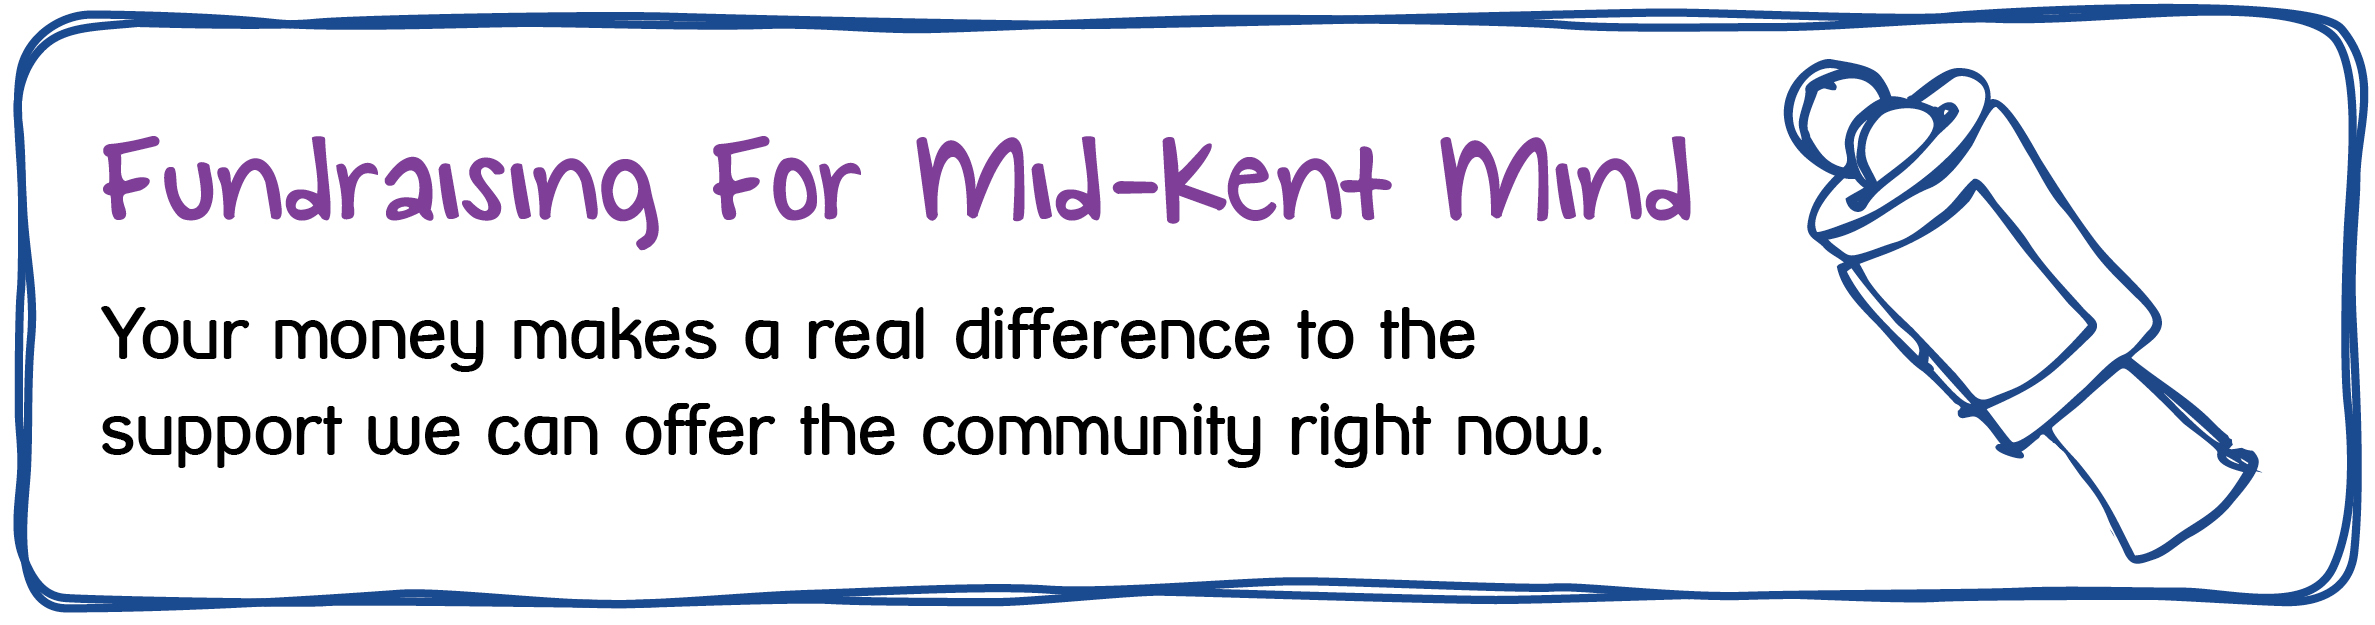 Fundraising for Mid-Kent Mind. Your money makes a real difference to the support we can offer the community right now.